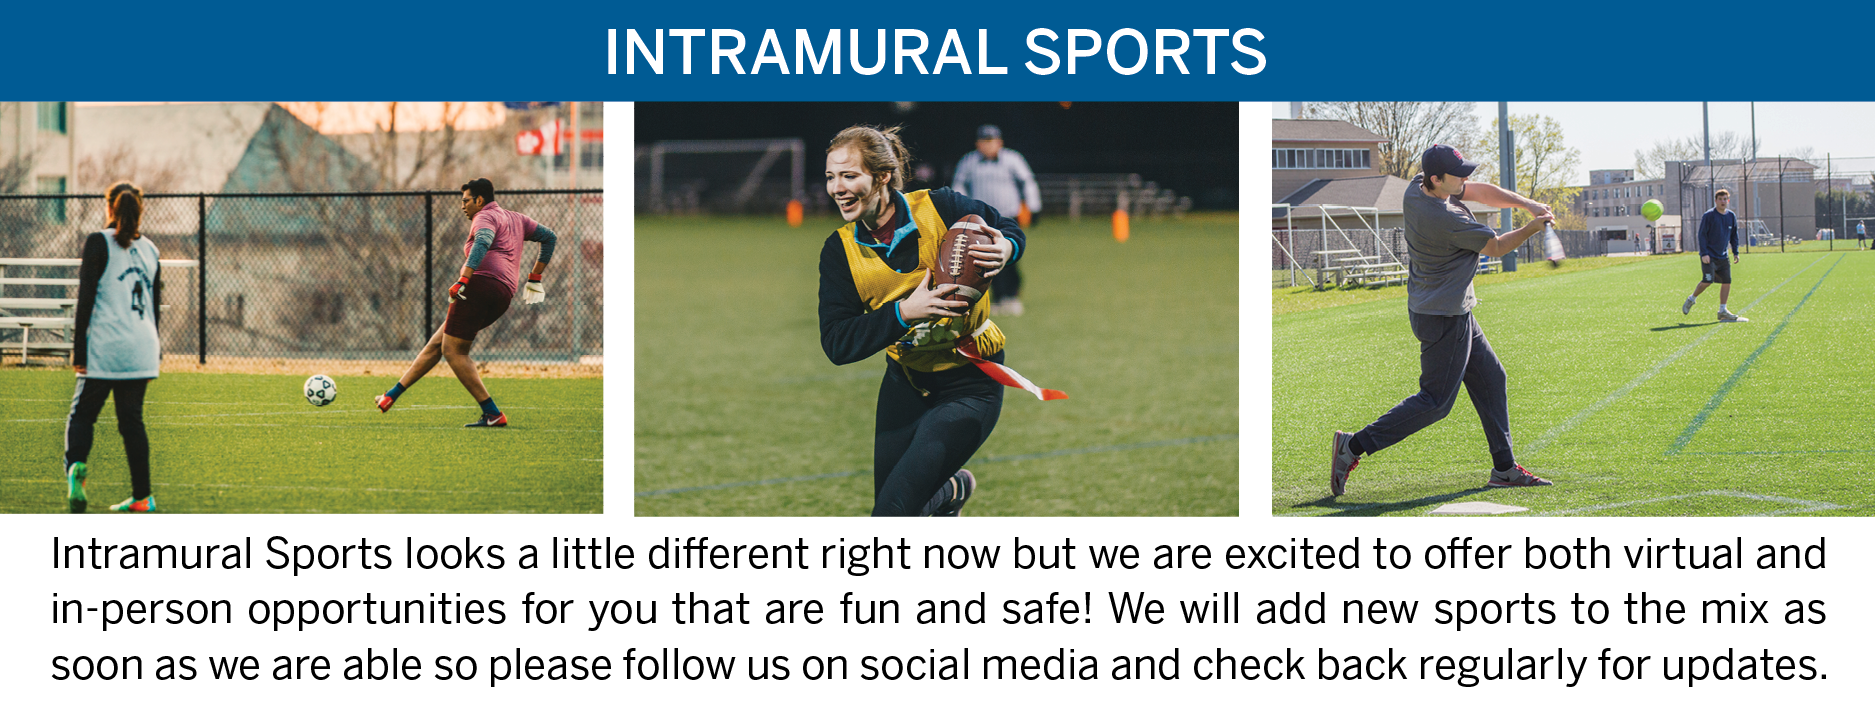 Intramural Sports - Intramural Sports looks a little different right now but we are excited to offer both virtual and in-person opportunities for you that are fun and safe! We will add new sports to the mix as soon as we are able so please follow us on social media and check back regularly for updates.